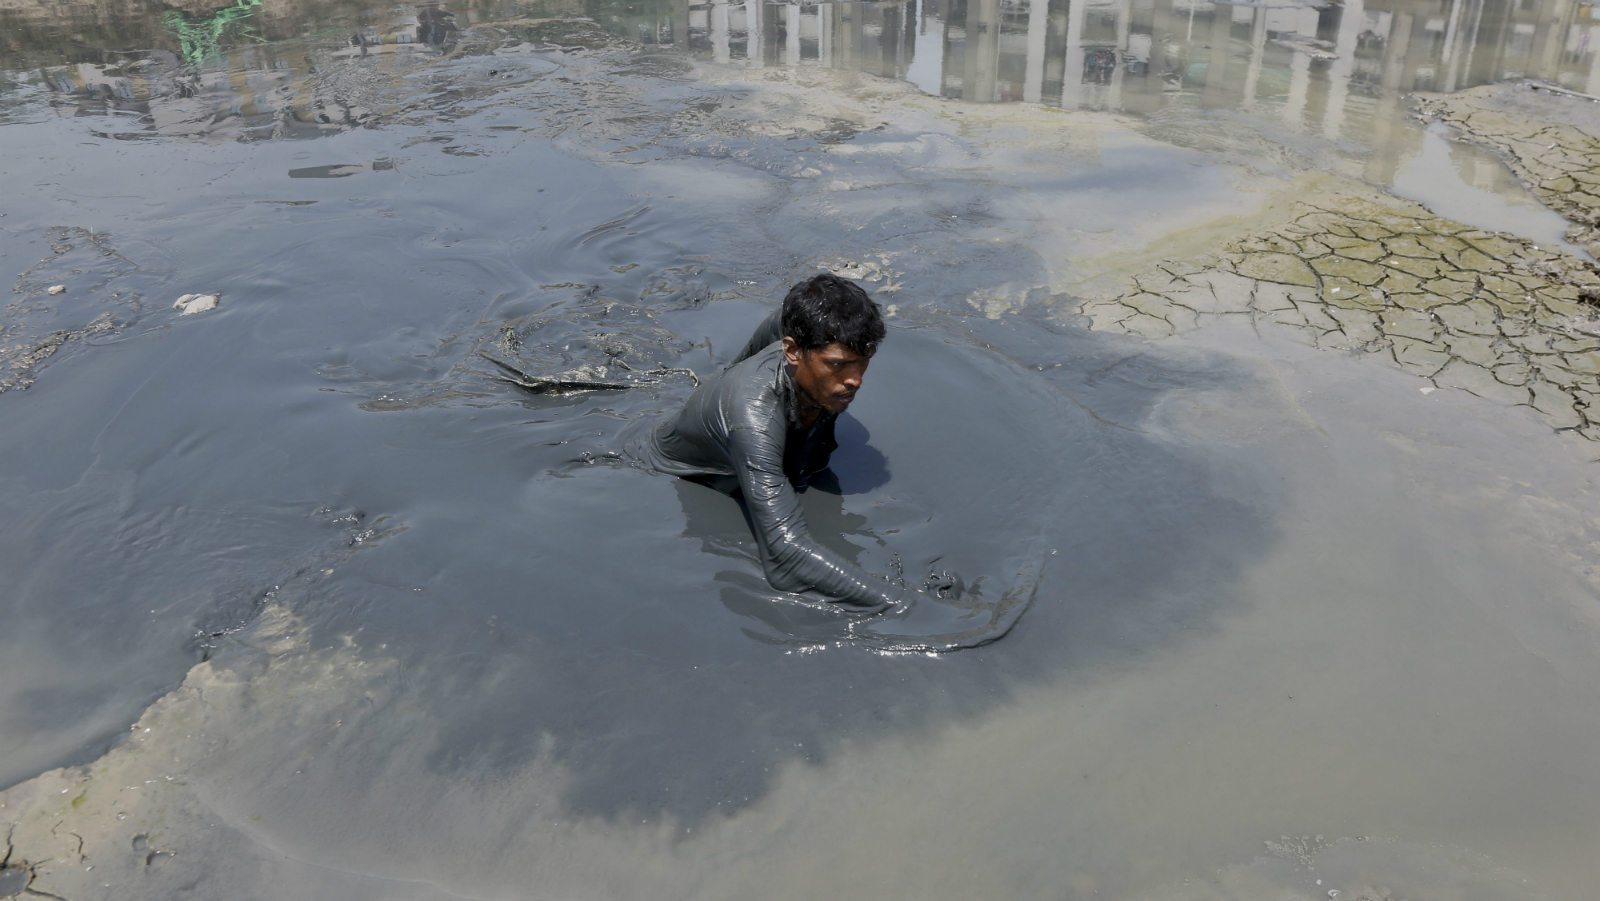 An Indian municipal worker searches for fish prior to rescuing them from a dried lake at Ratanpura in Ahmadabad, Gujarat, India, Wednesday, May 11, 2016. Much of India is reeling under a weekslong heat wave and severe drought conditions that have decimated crops, killed livestock and left at least 330 million Indians without enough water for their daily needs.Rivers, lakes and dams have dried up in parts of the western states of Maharashtra and Gujarat, and overall officials say that groundwater reservoirs are at just 22 percent capacity.